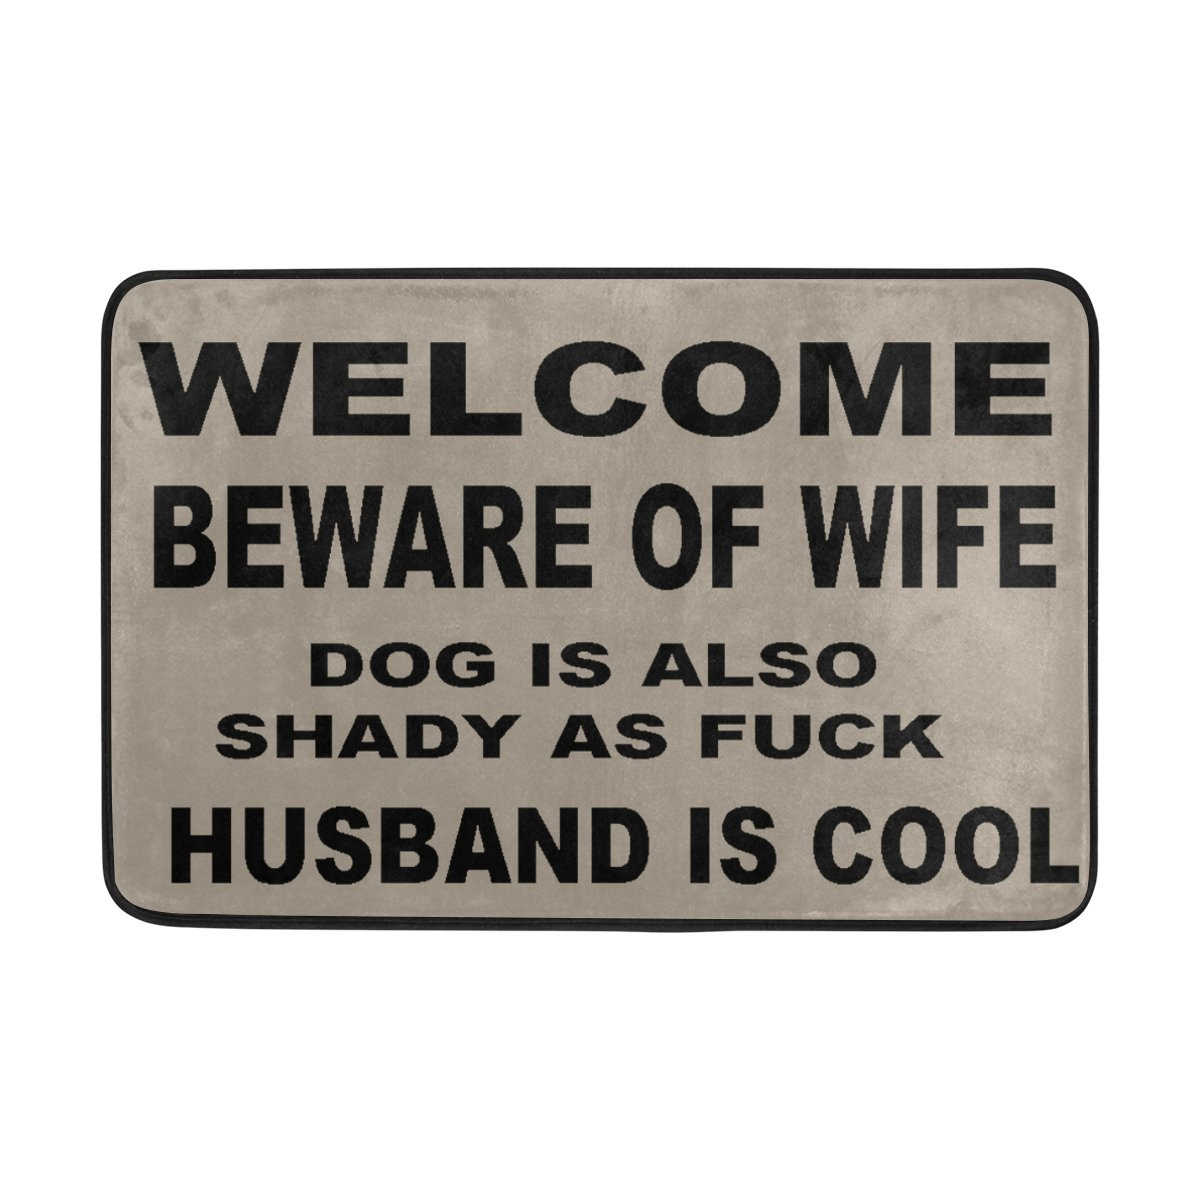 Naanle Entrance Doormat Welcome Beware Of Wife Dog Is Also Shady As Fuck Husband Is Cool Door Mat Outdoor Indoor Cotton interlayer Polyester Fabric Top 15.7x23.6 Inch